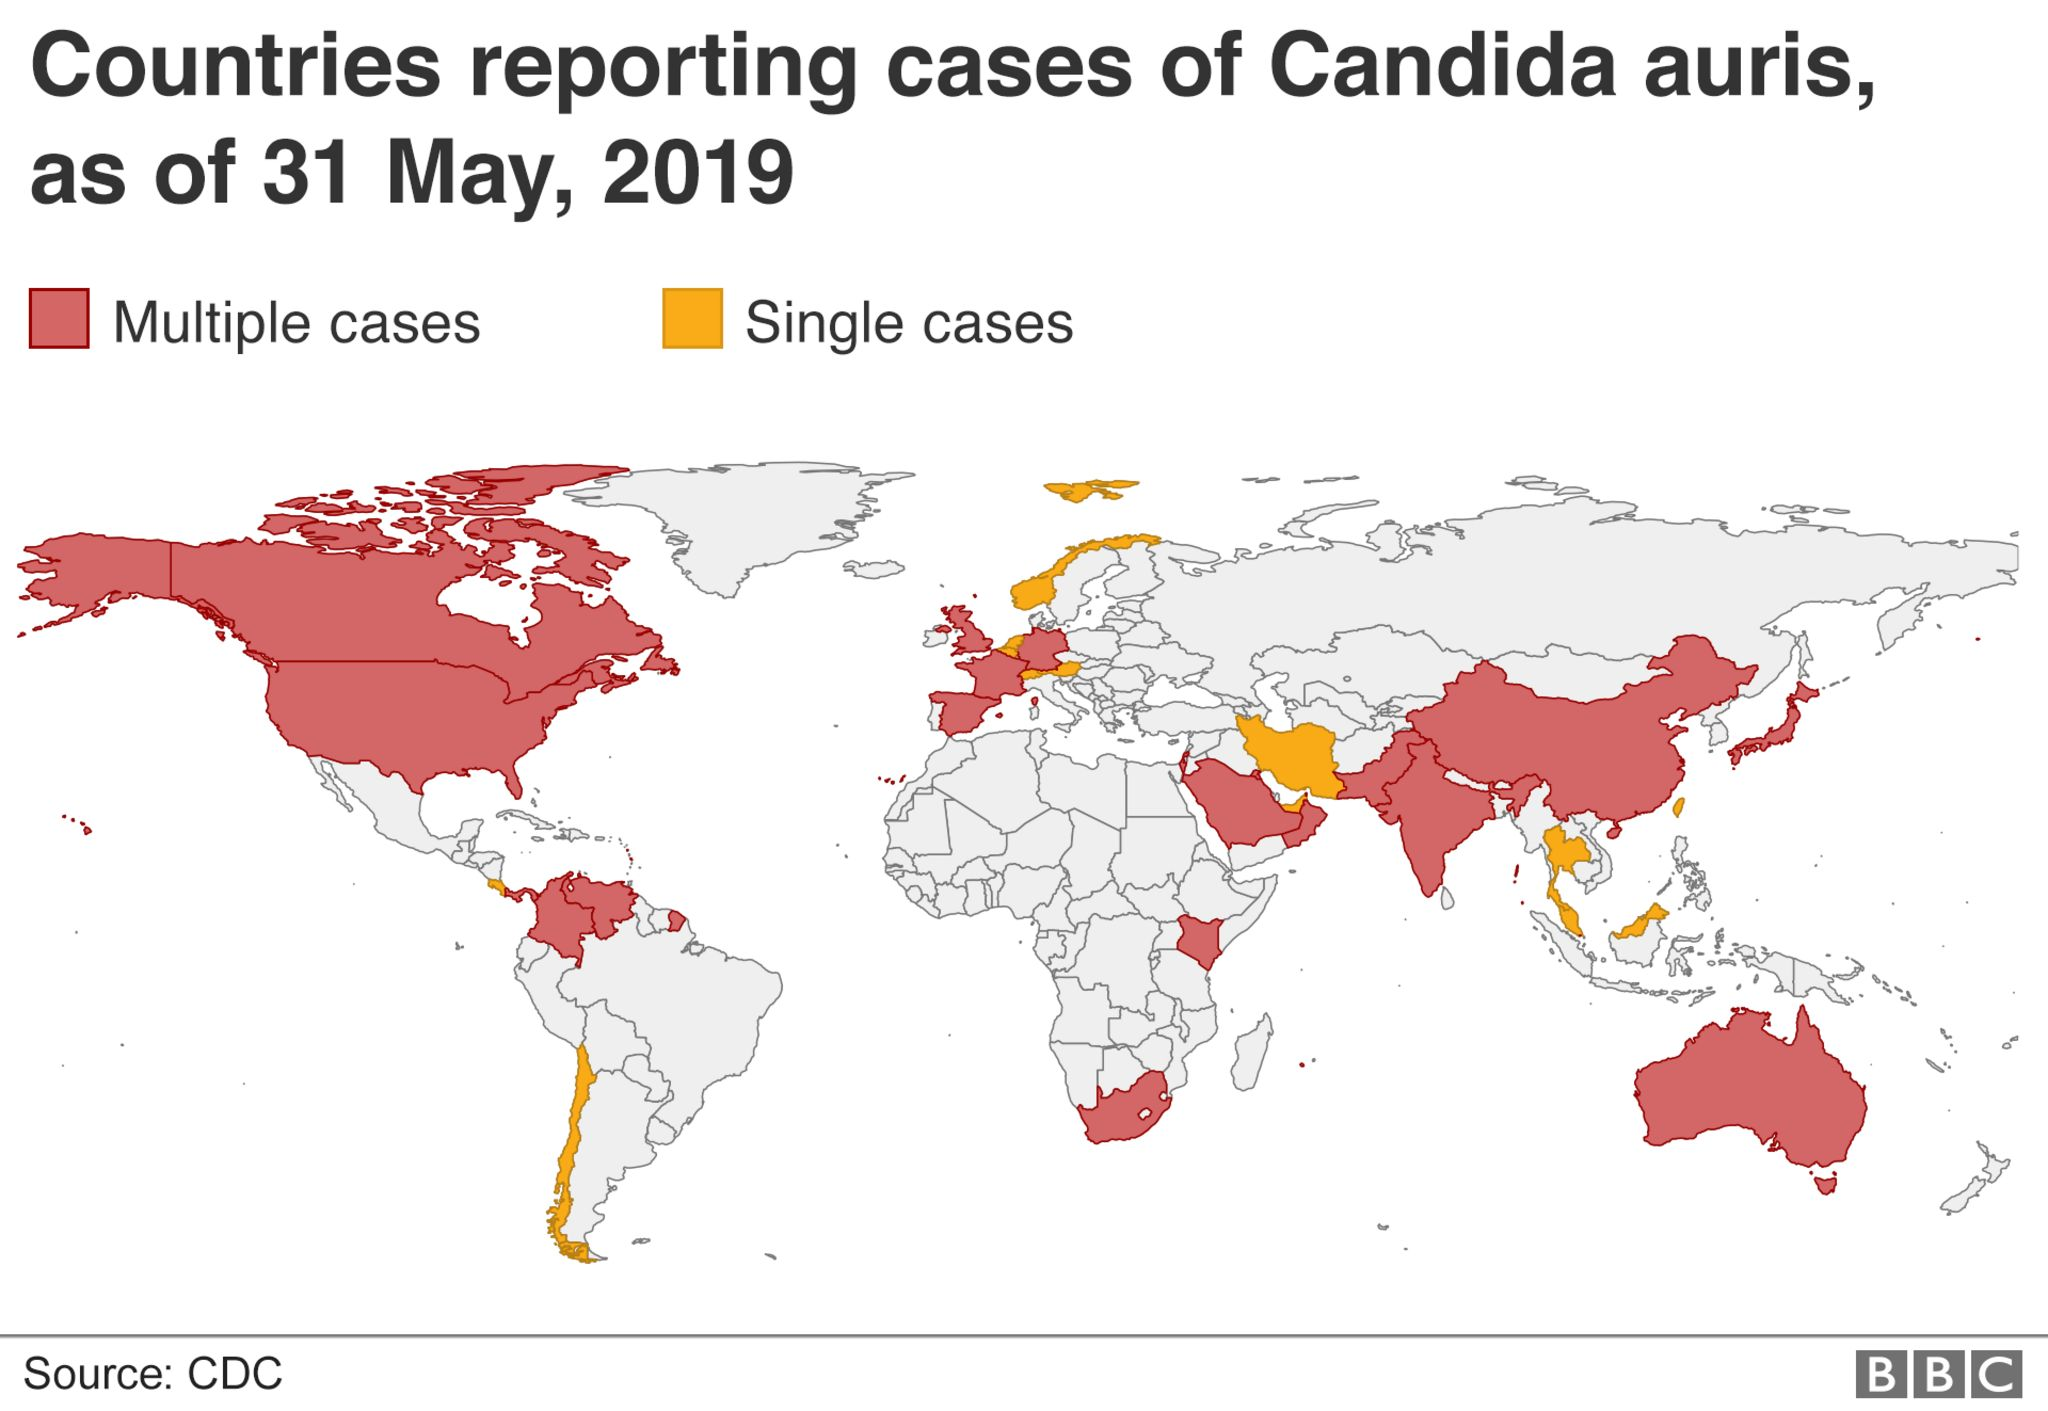 Map of Candida auris cases